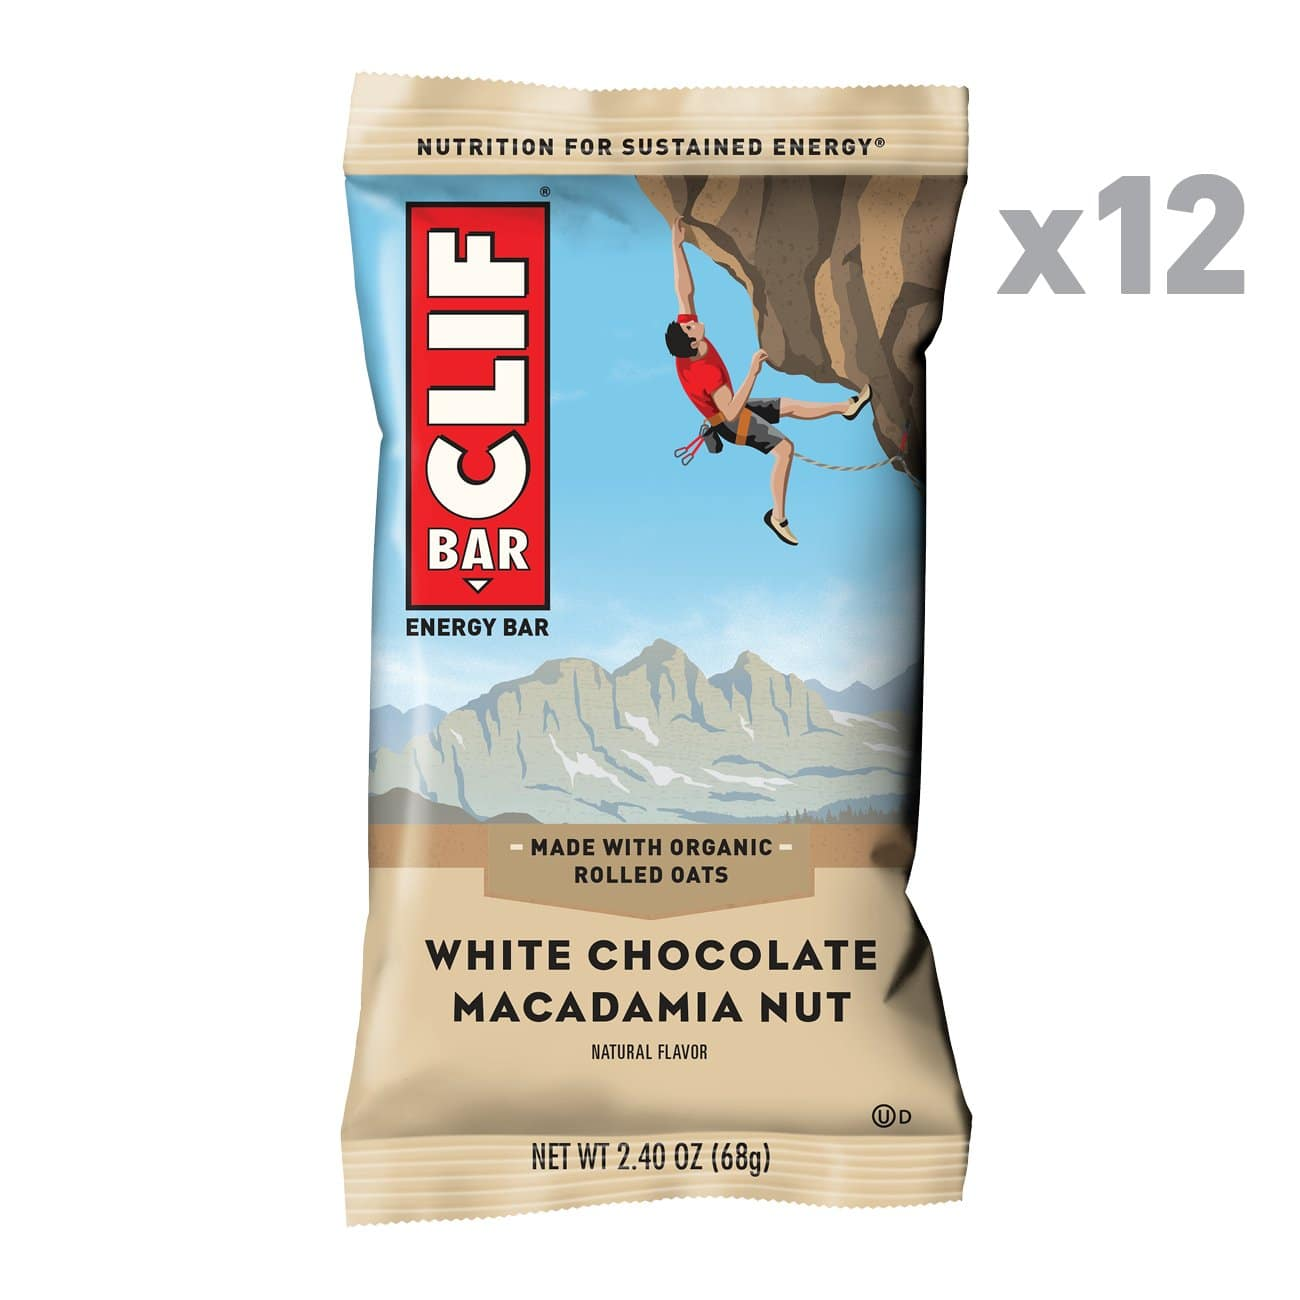 CLIF BAR - Energy Bar - White Chocolate Macadamia Nut (2.4 Ounce Protein Bar, 12 Count) for 5.68 after S&S at Amazon $5.68